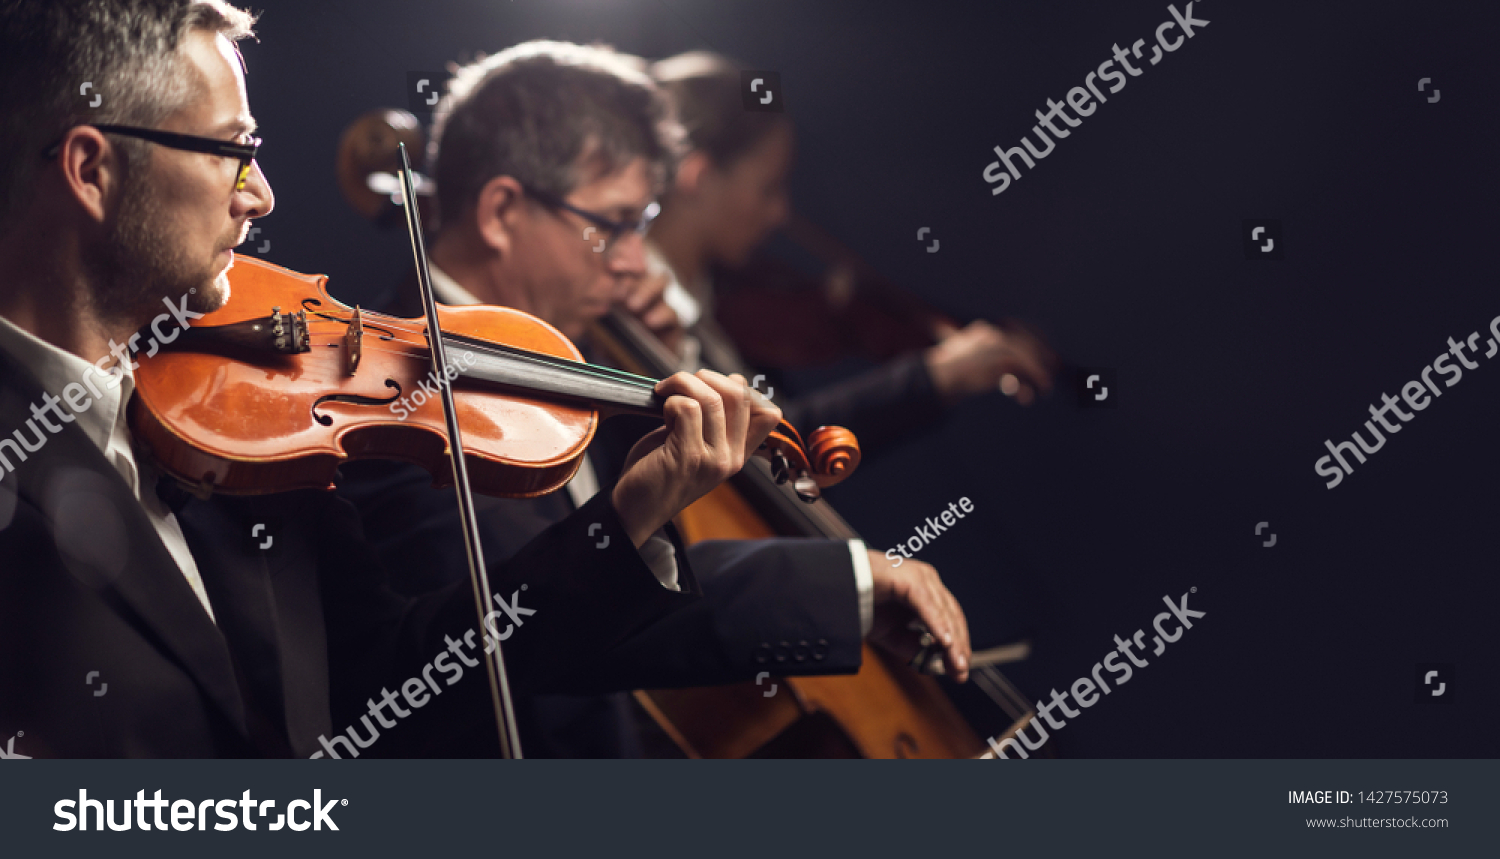 Professional symphonic orchestra performing on stage and playing a classical music concert, violinist playing in the foreground, arts and entertainment concept #1427575073